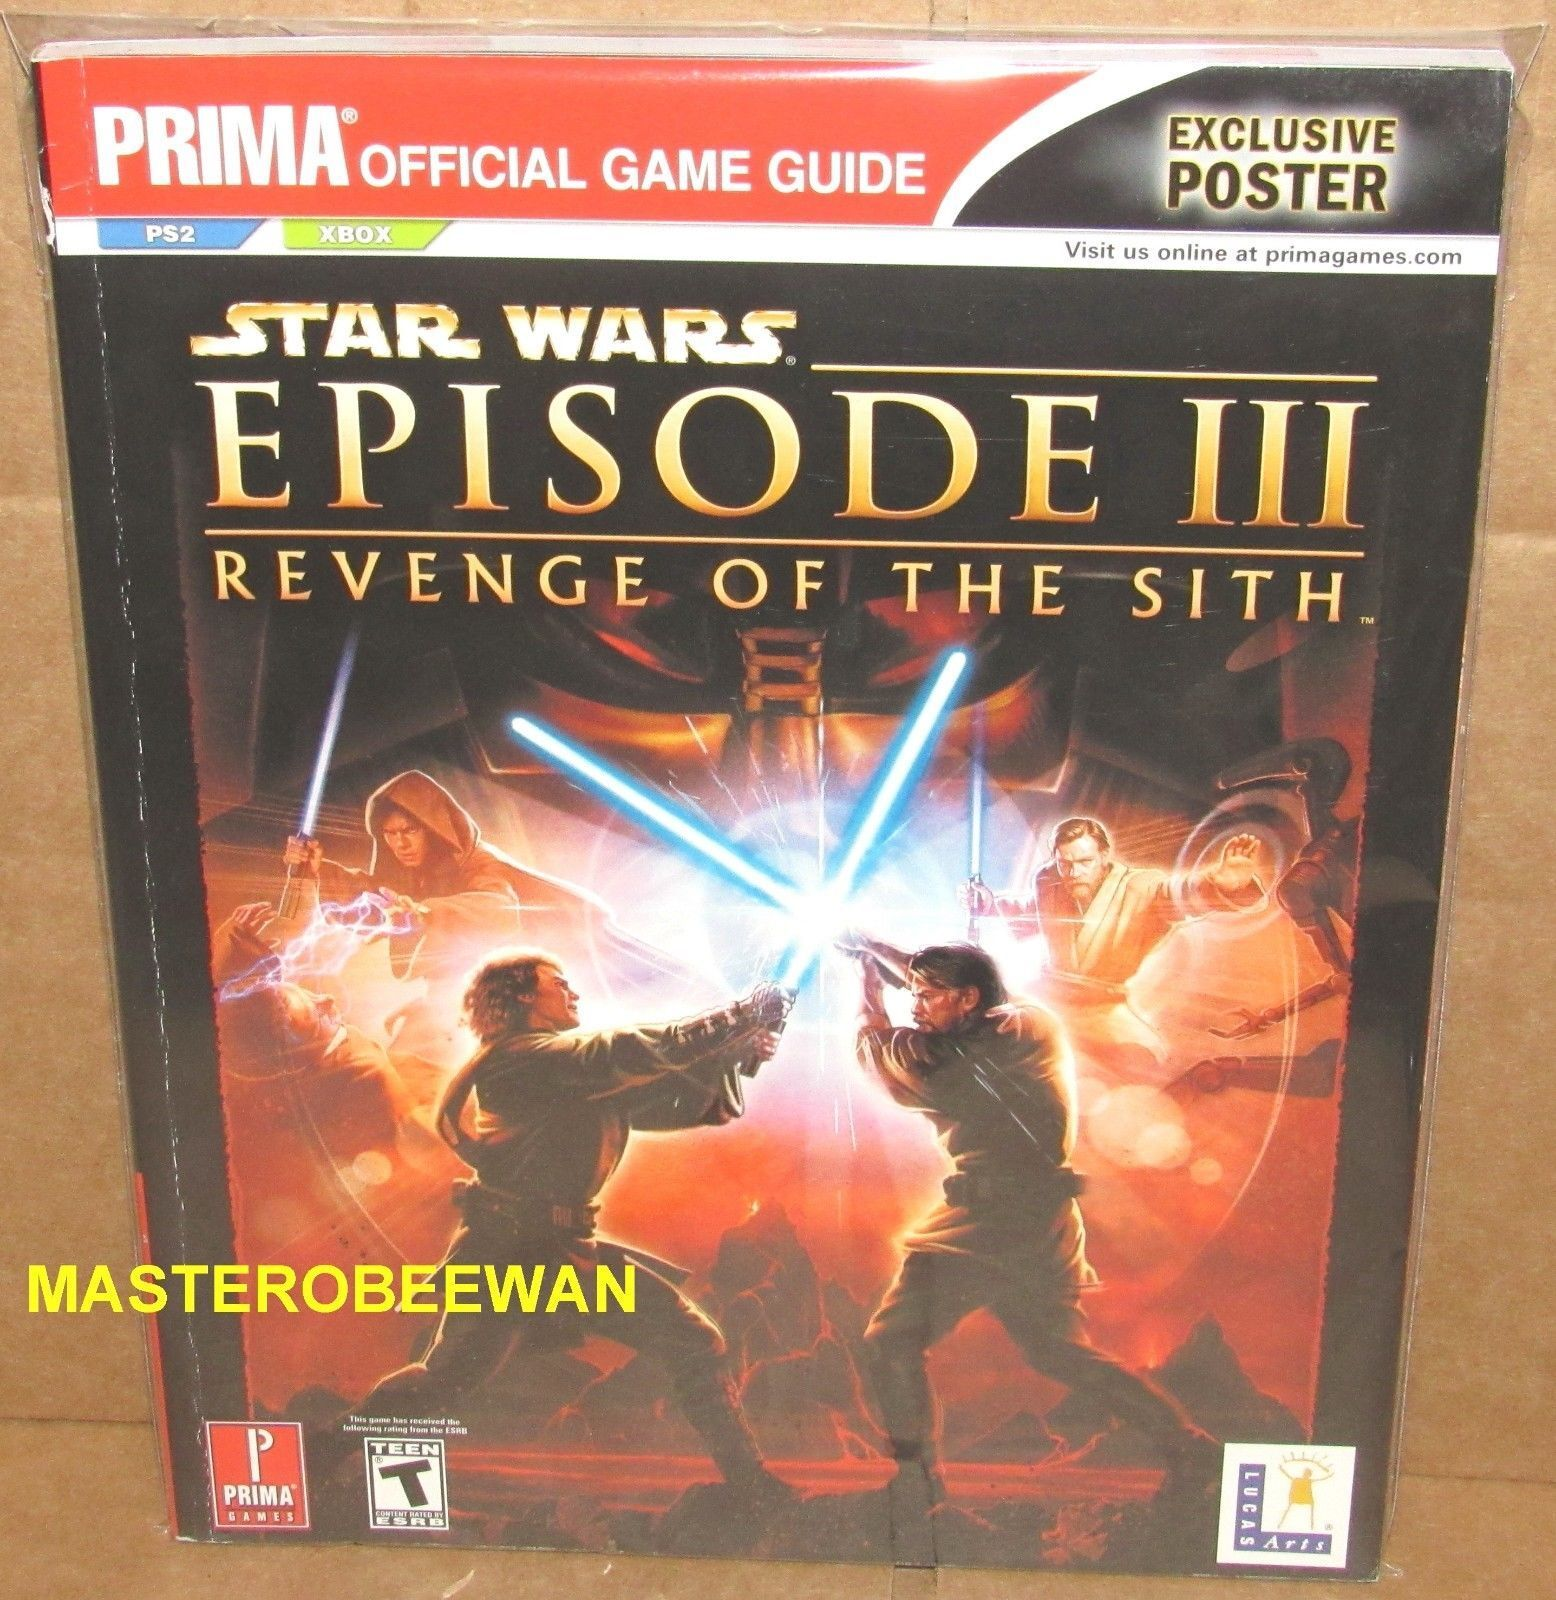 Star Wars Episode Iii Revenge Of The Sith Guide Book Ps2 Xbox New Poster Polybull Com